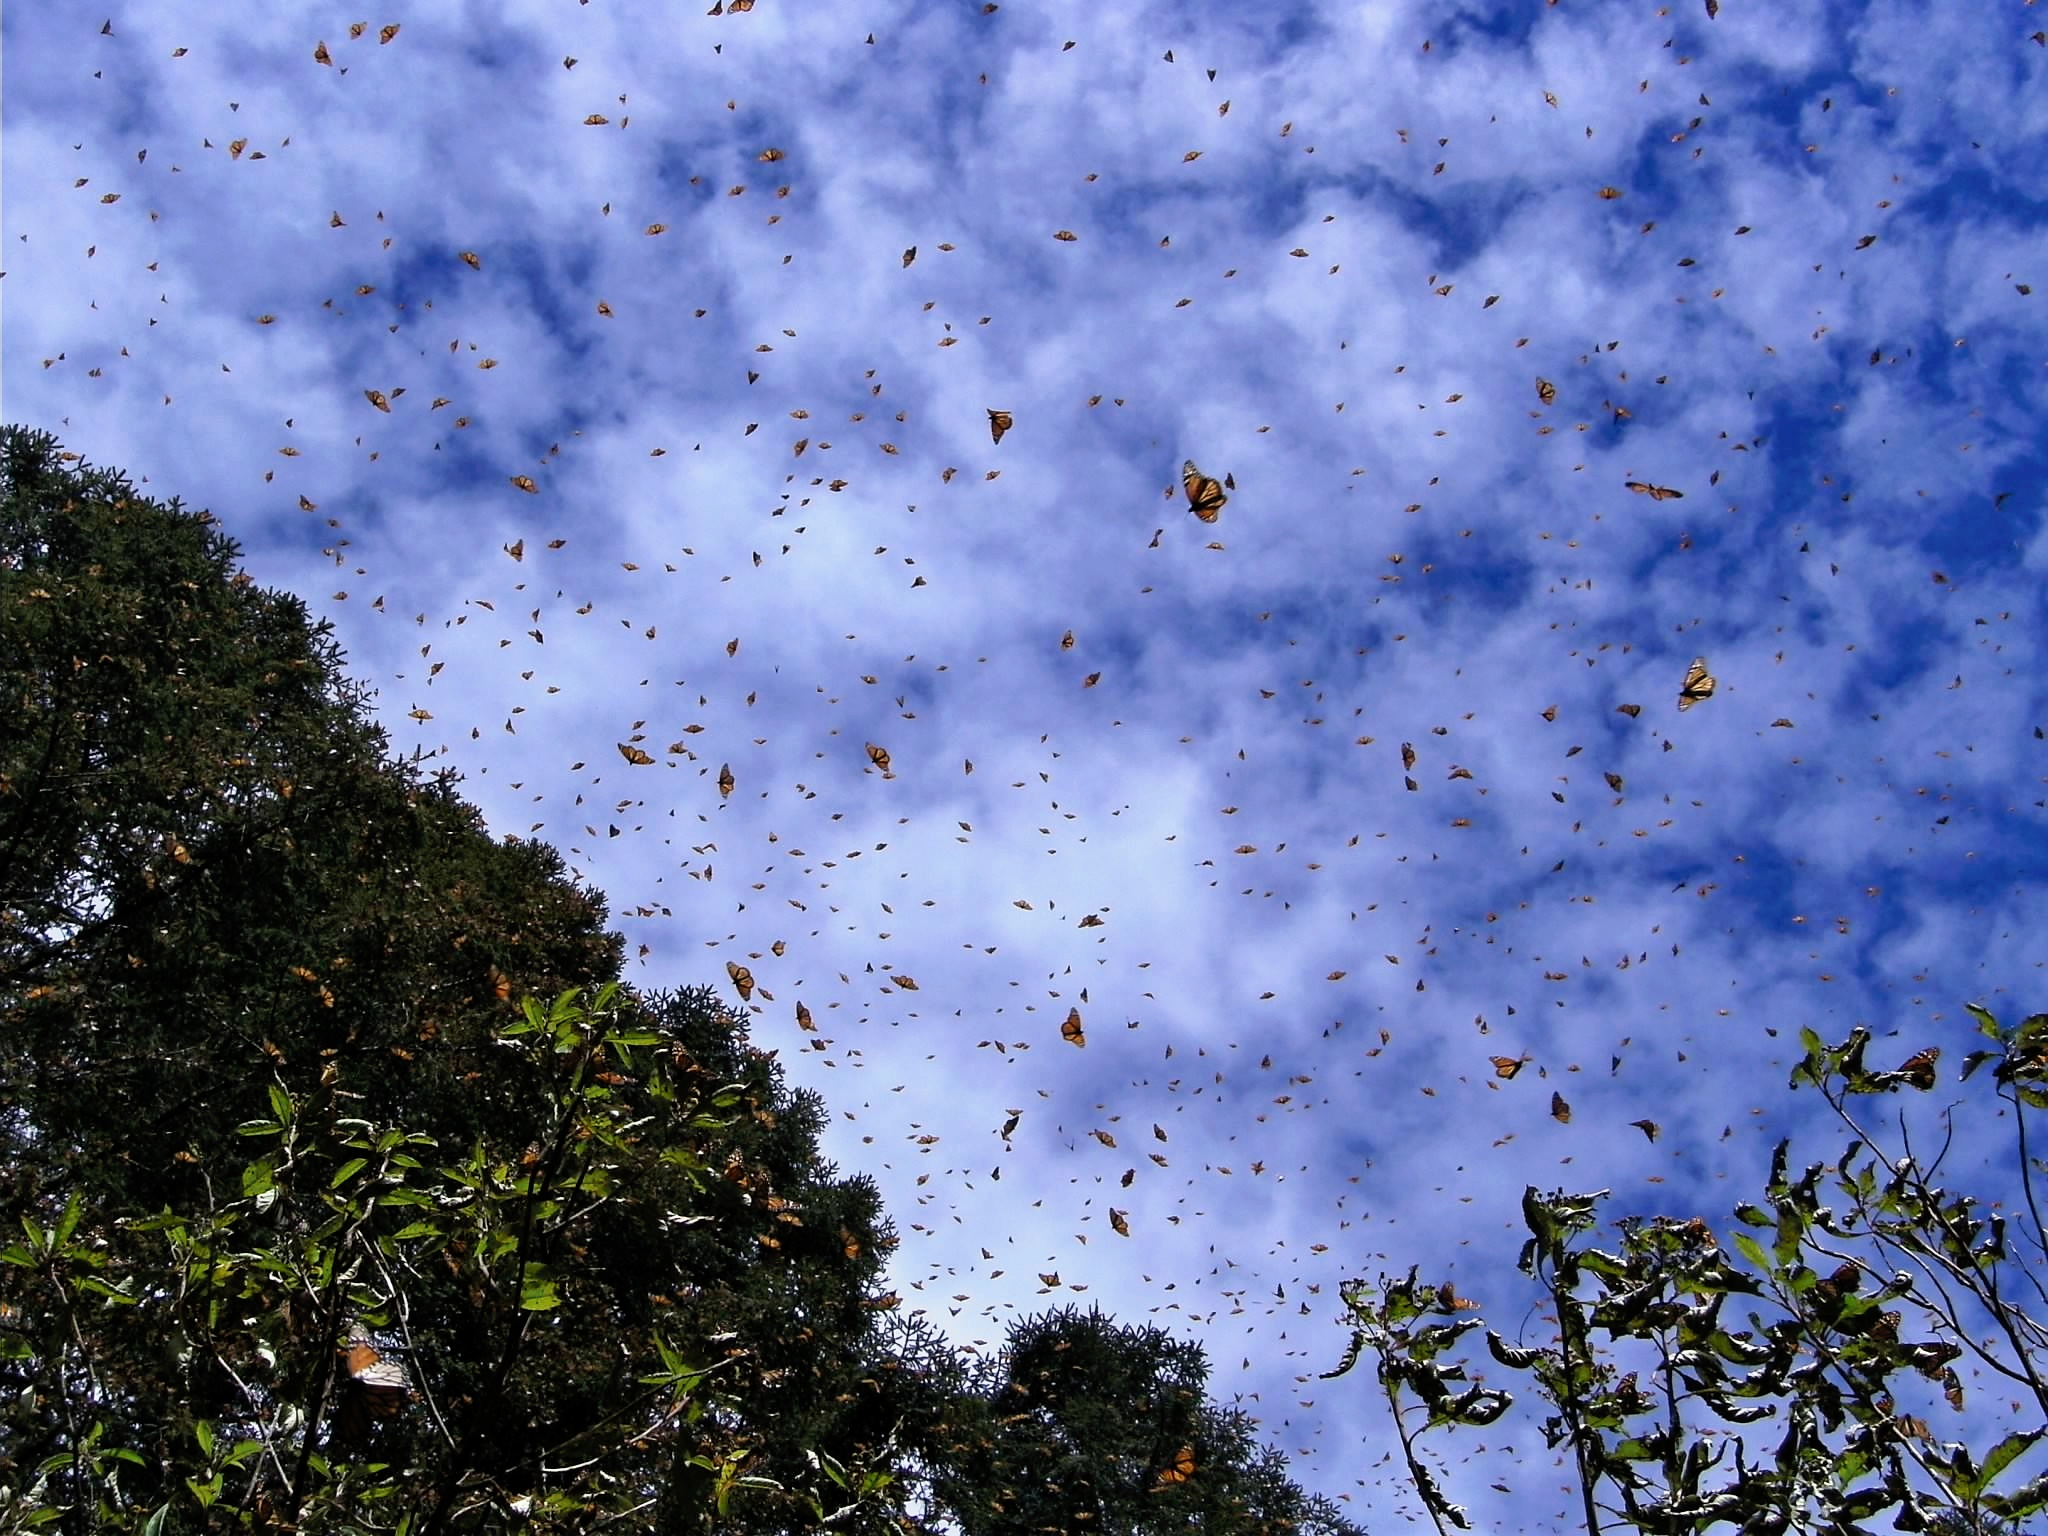 Annual monarch butterfly migration. Photo courtesy Mark Clayden.